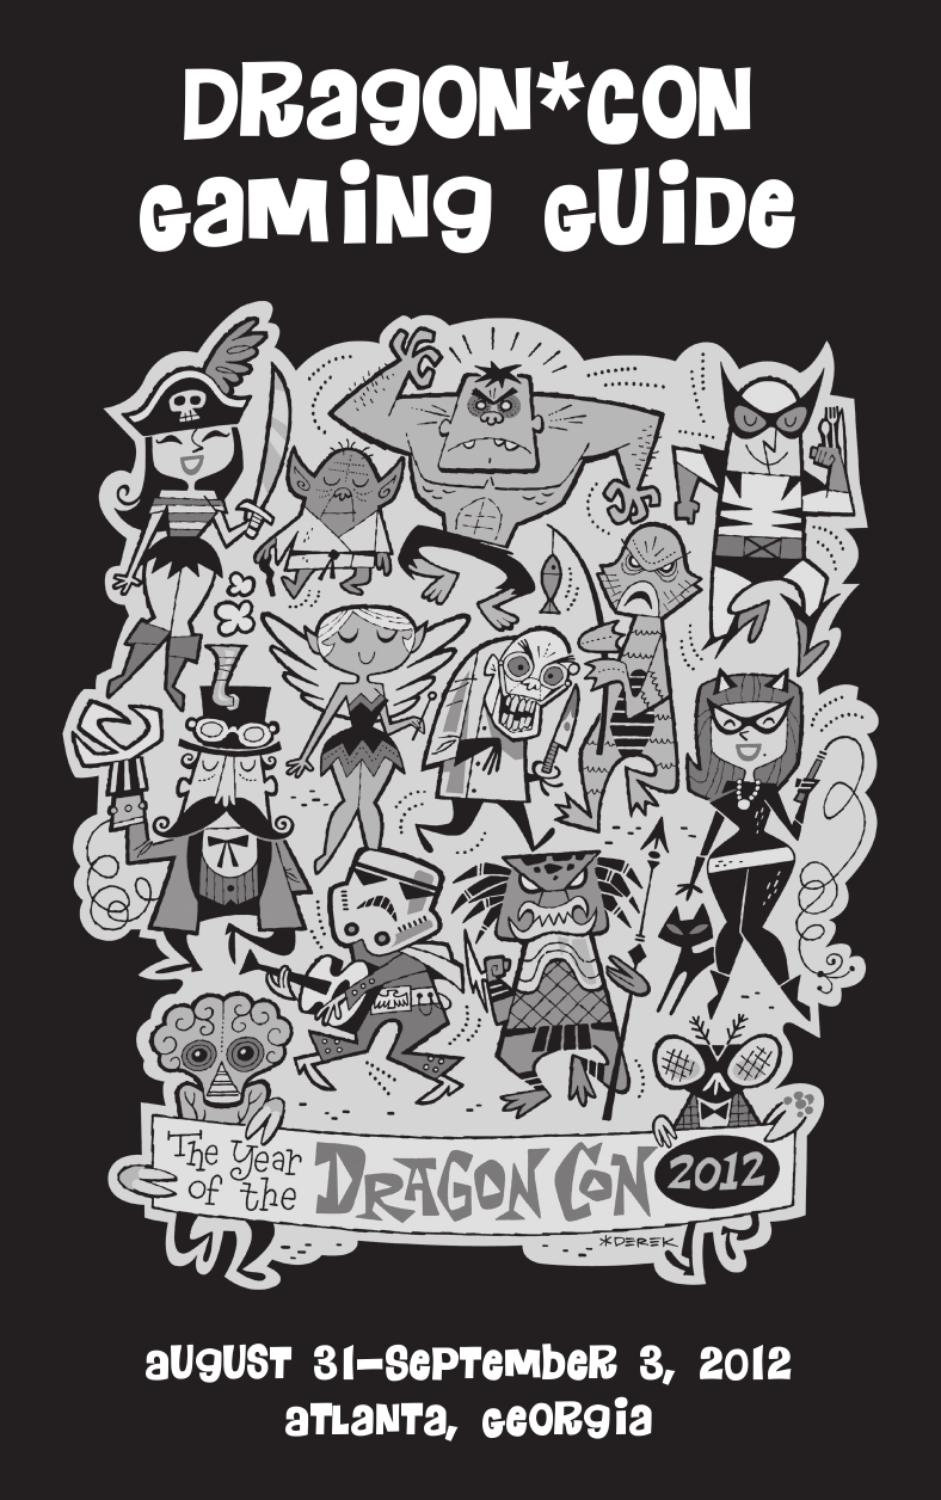 2012 Dragon*Con Gaming Guide by Dragon Con - issuu